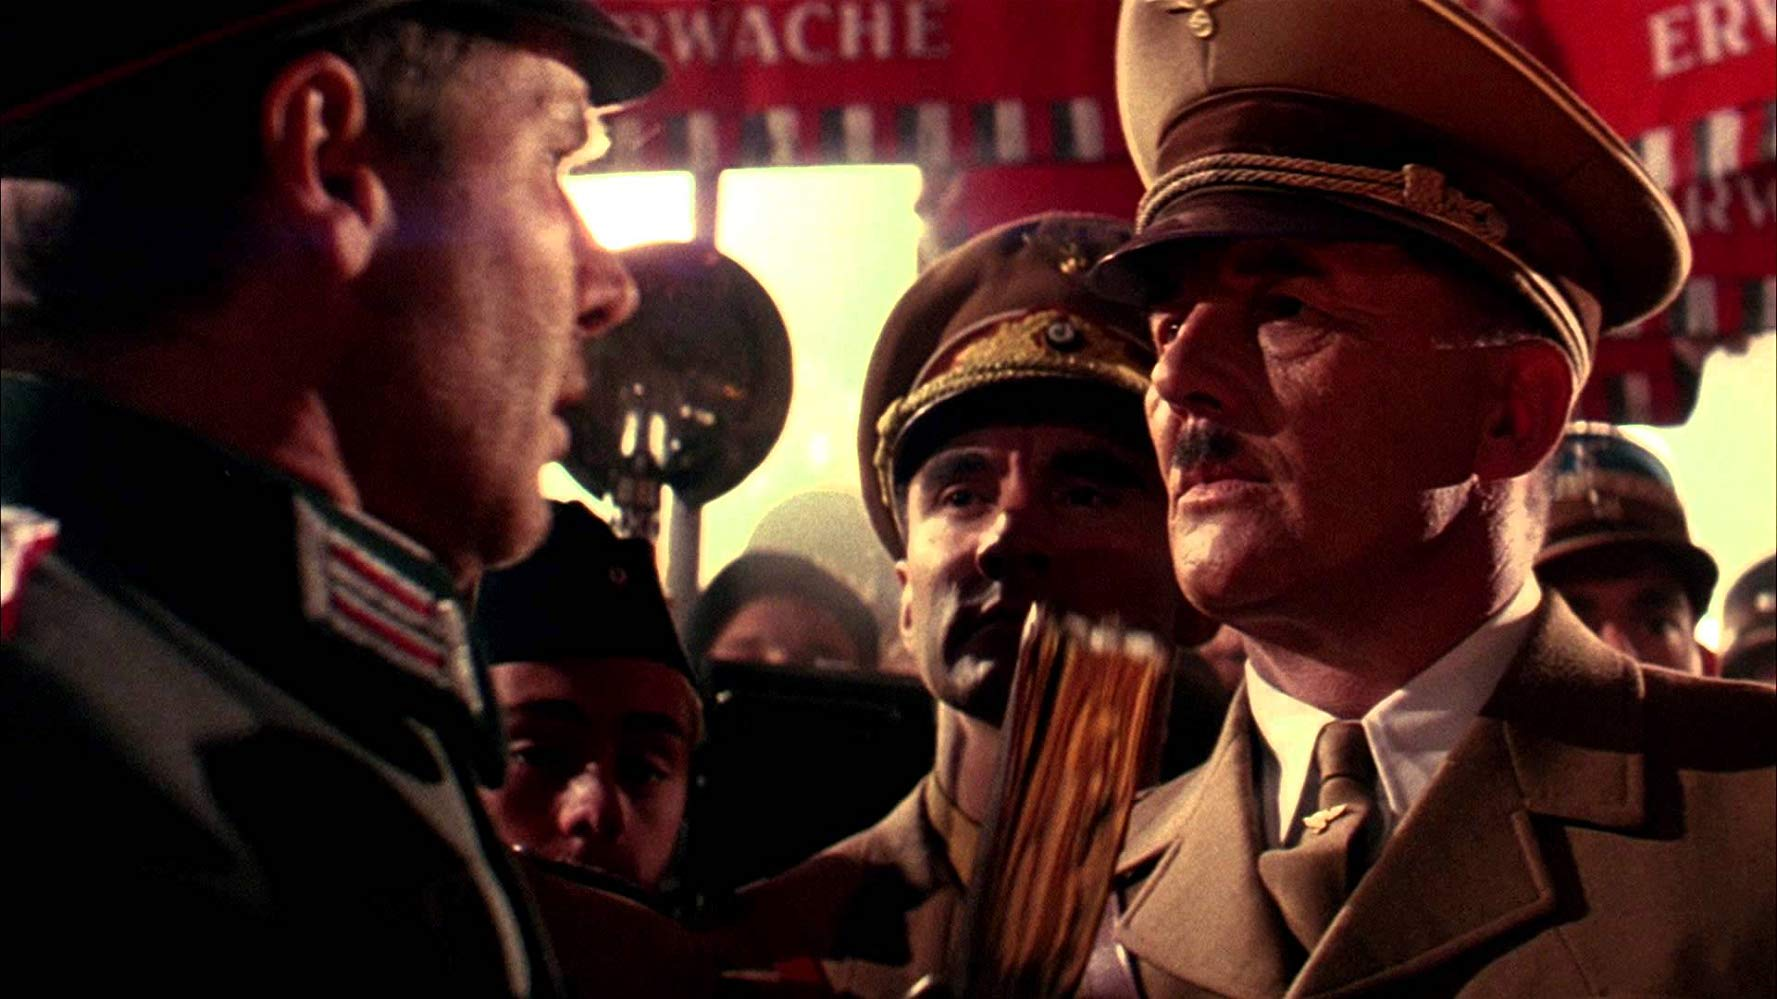 Indiana Jones meets Adolf Hitler in Indiana Jones and the Last Crusade (1989)